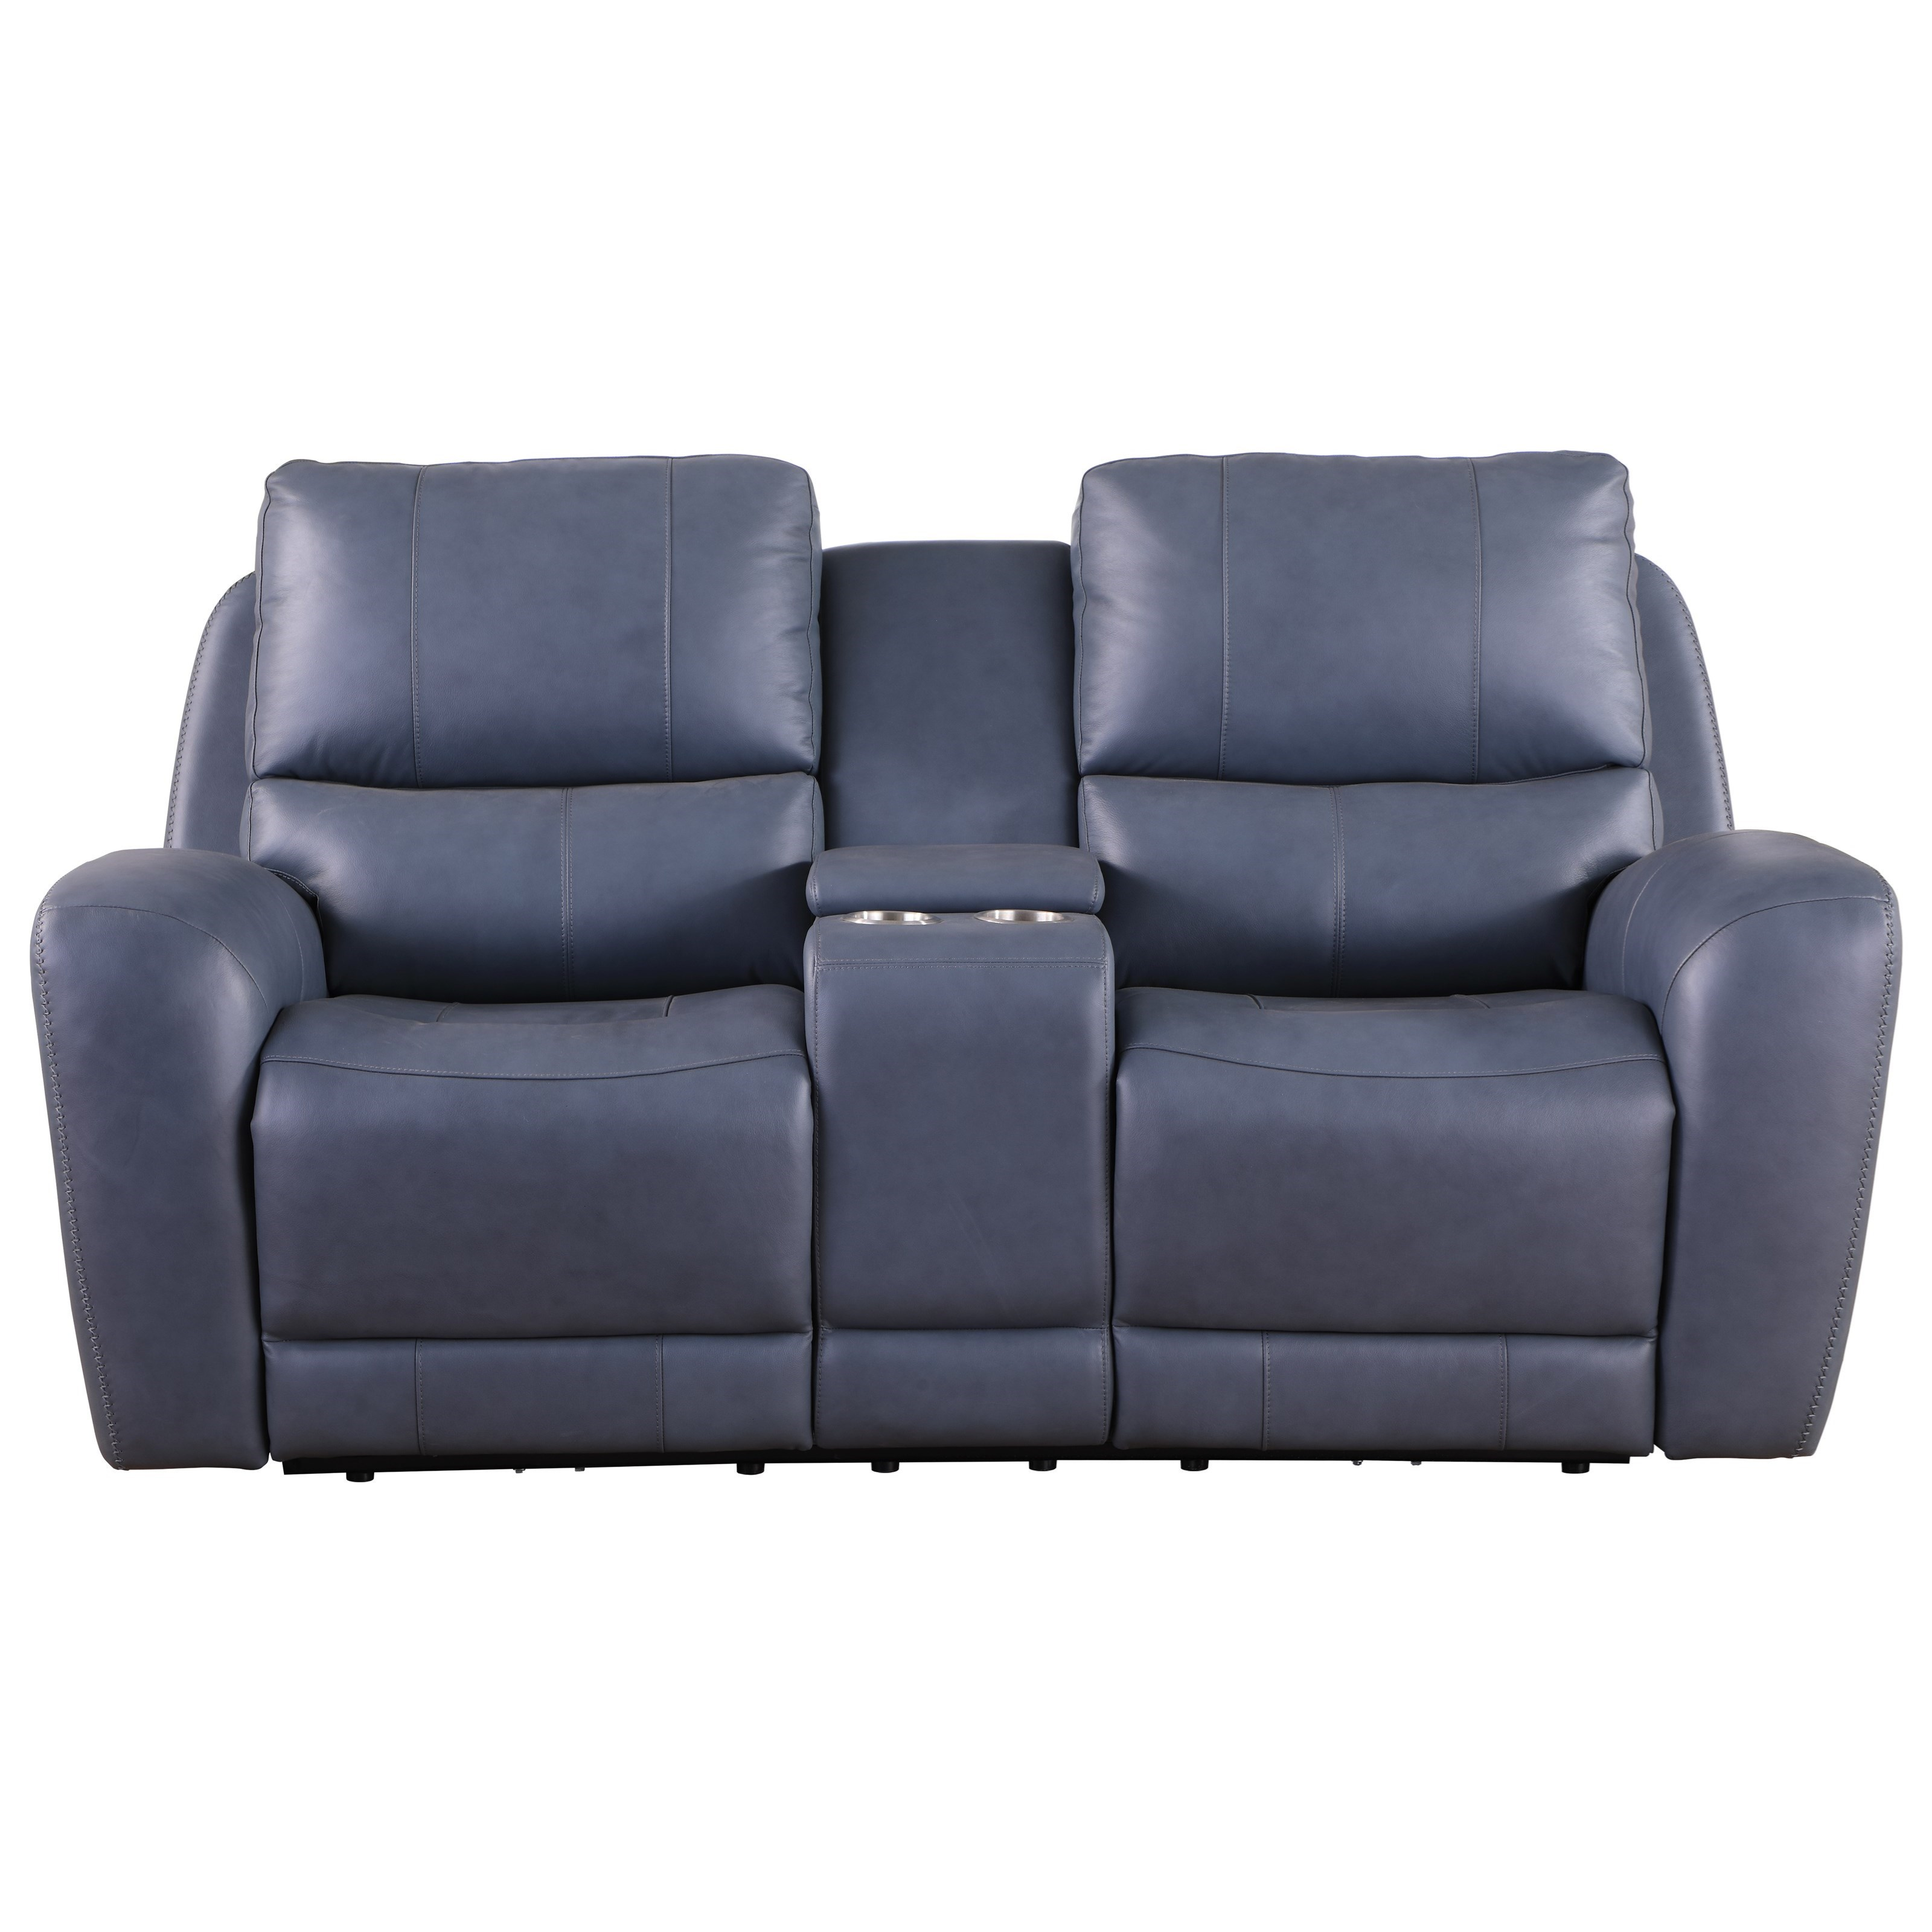 Belair Power Reclining Loveseat by Leather Italia USA at Lindy's Furniture Company